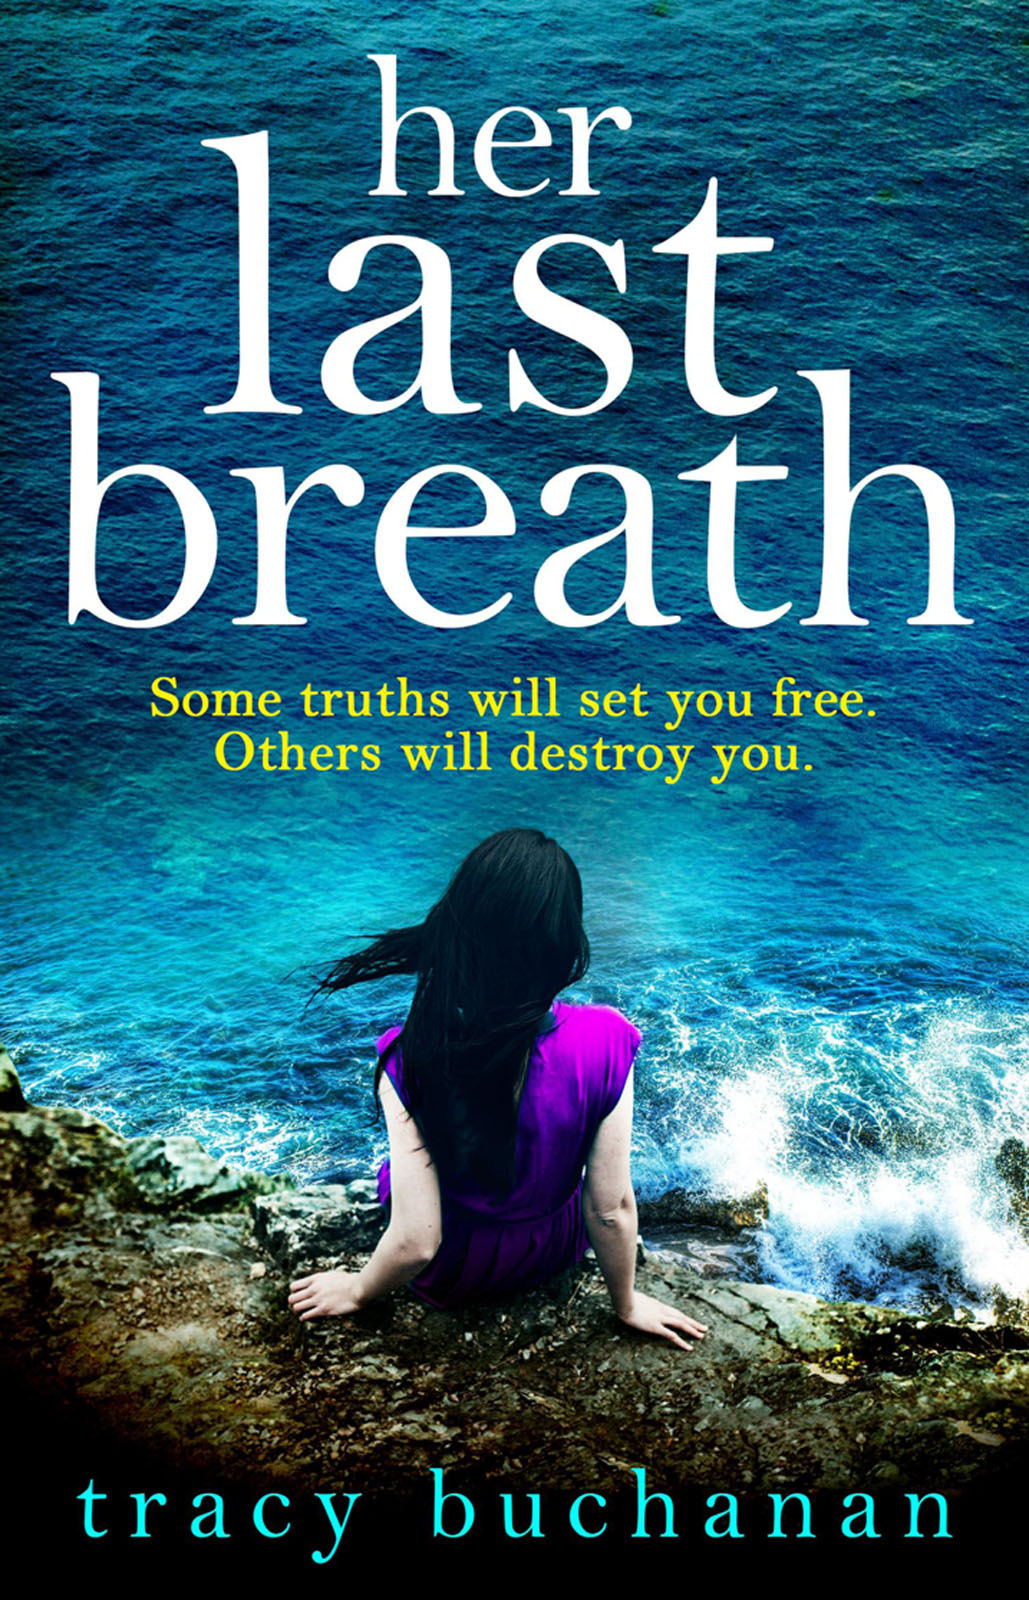 Tracy Buchanan Her Last Breath: The new gripping summer page-turner from the No 1 bestseller caesar s last breath